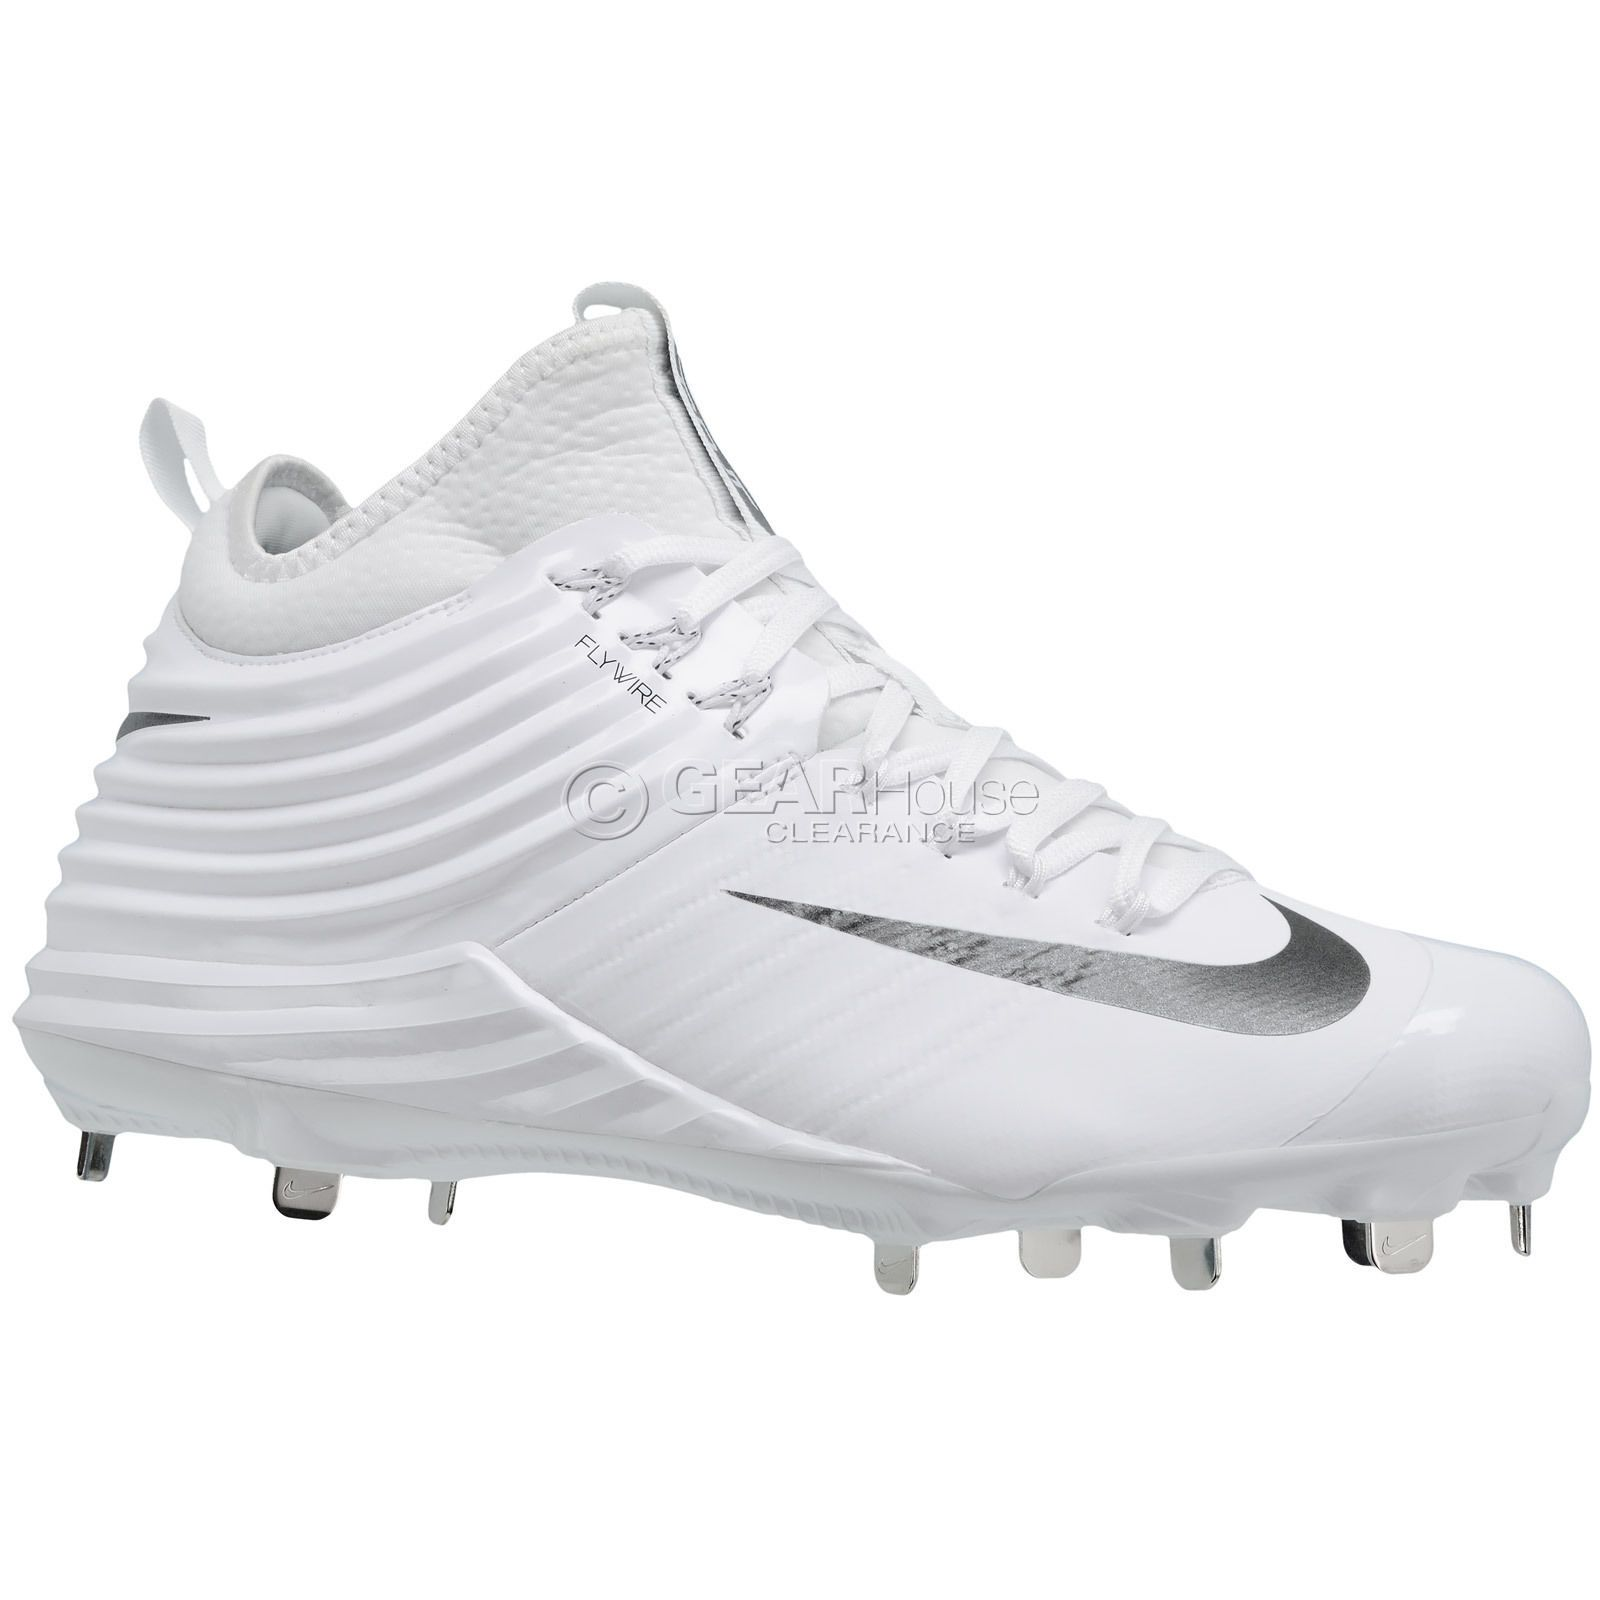 New $140 NIKE Lunar Trout 2 Mid Metal Mens Baseball Cleats : White